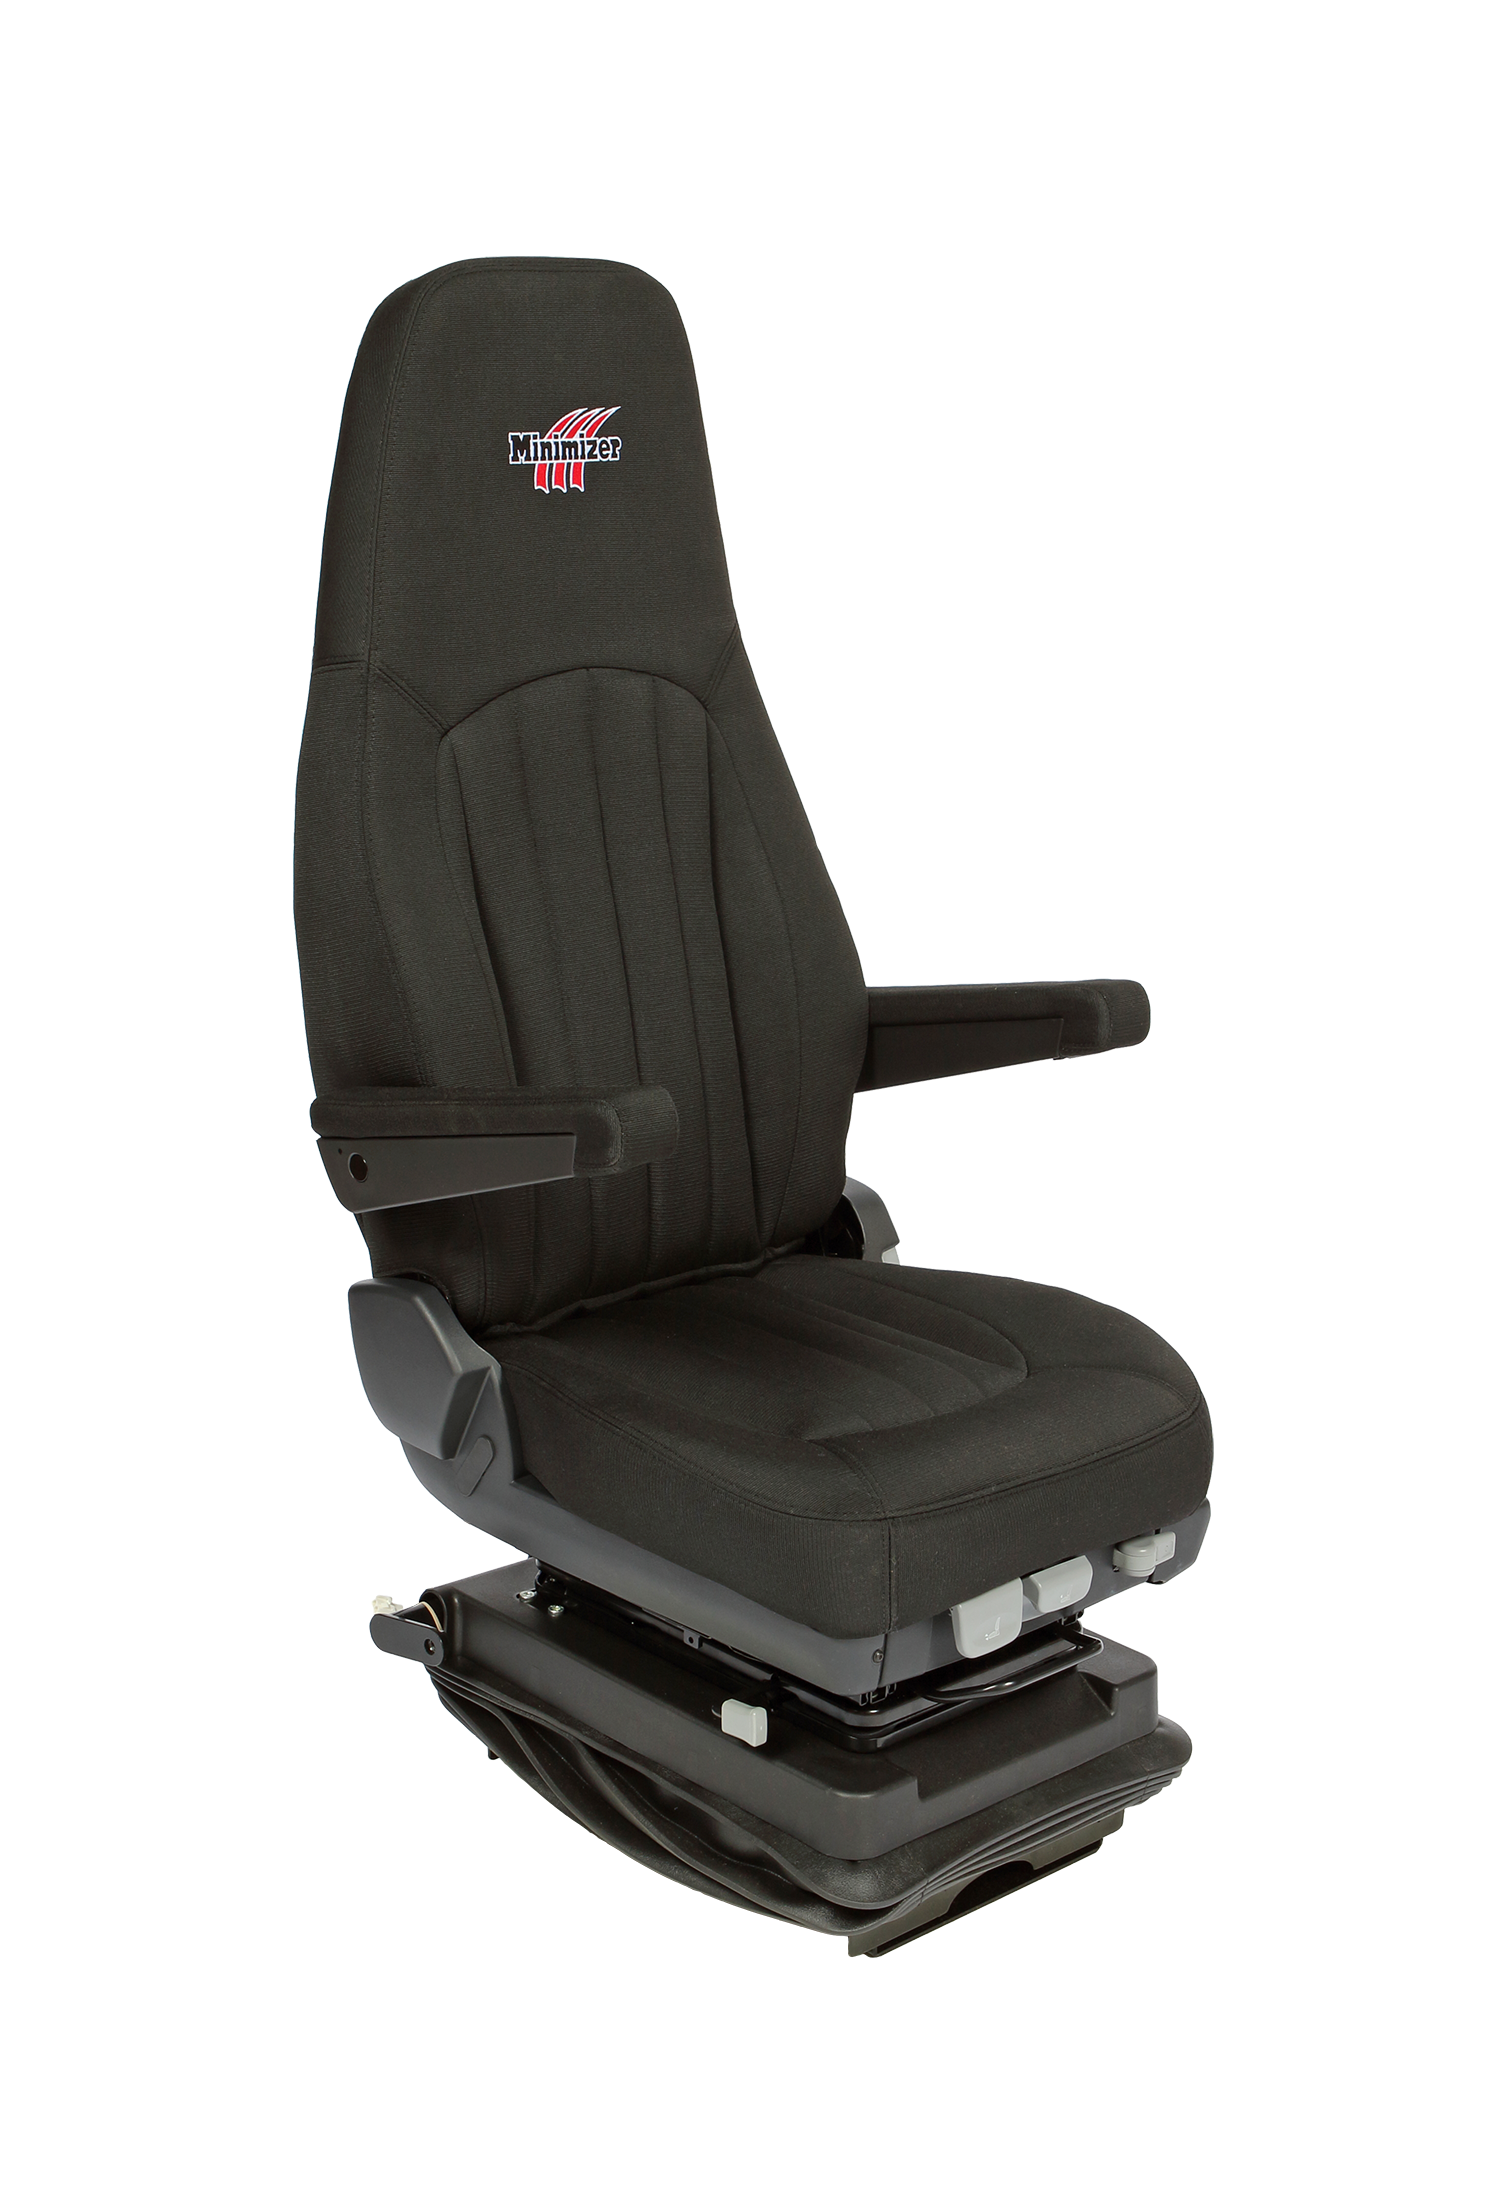 Minimizer Heavy Duty Semi Truck Seats - Premium Cloth Base